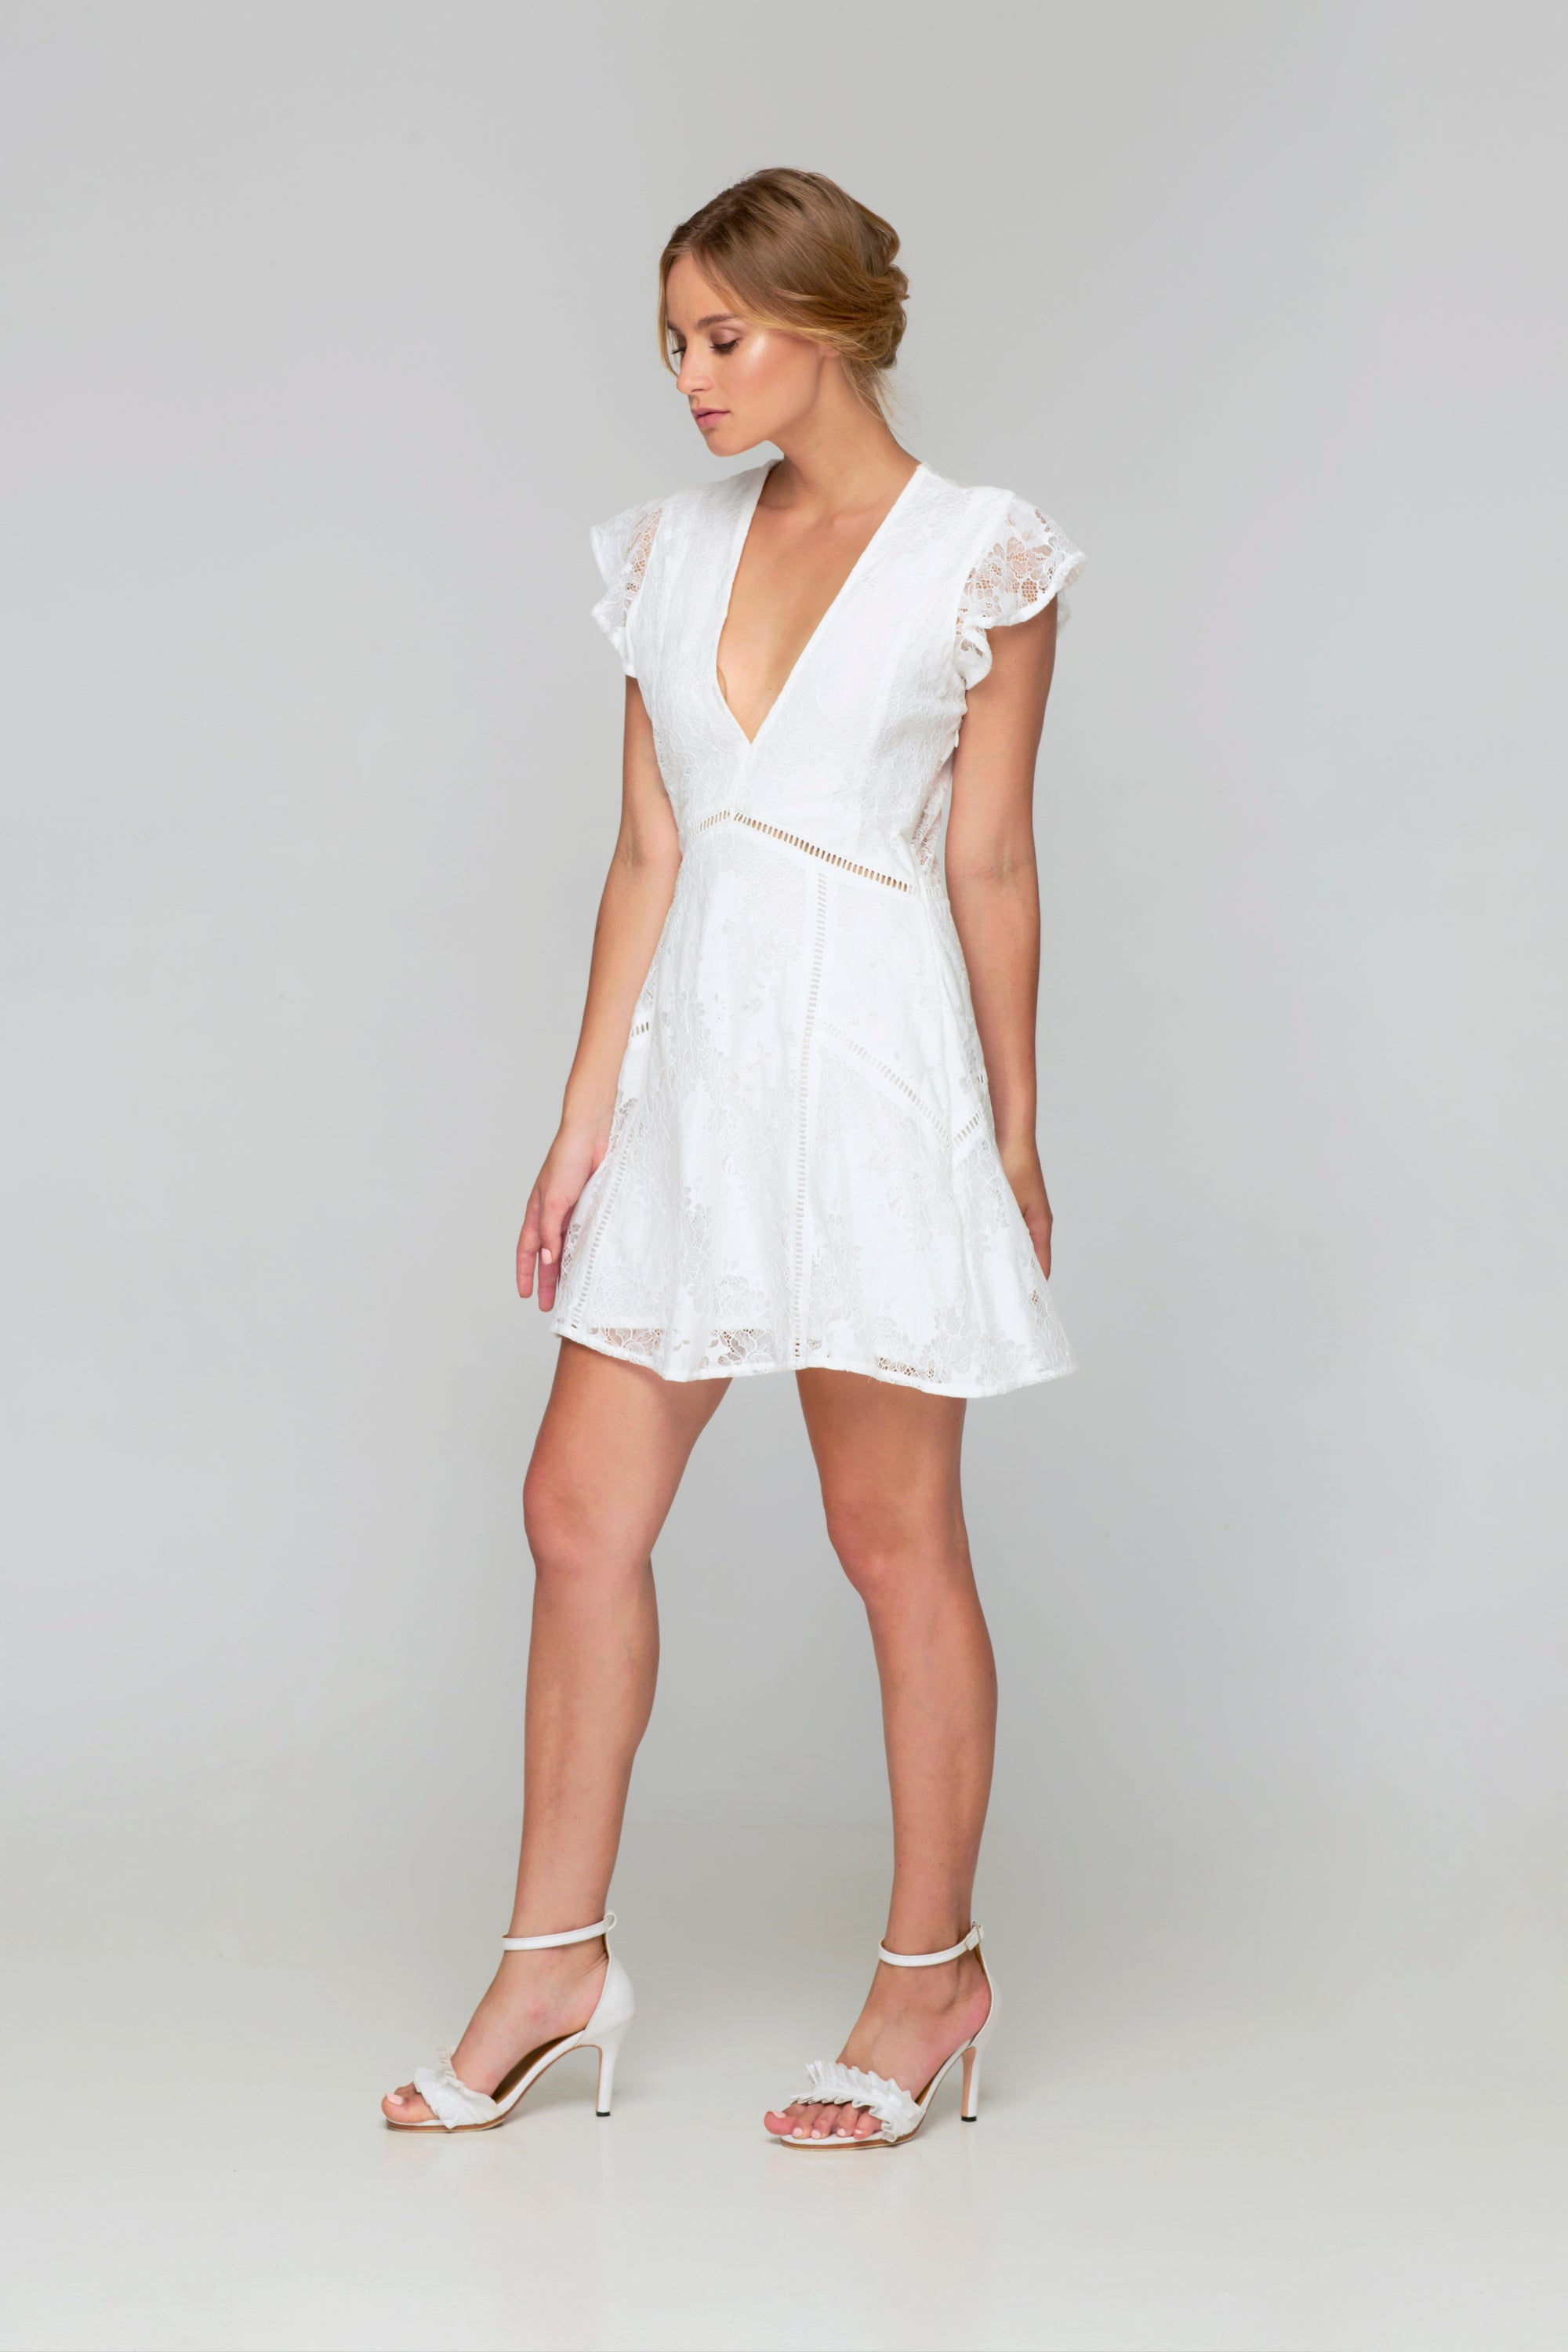 Maggie May Mini Dress